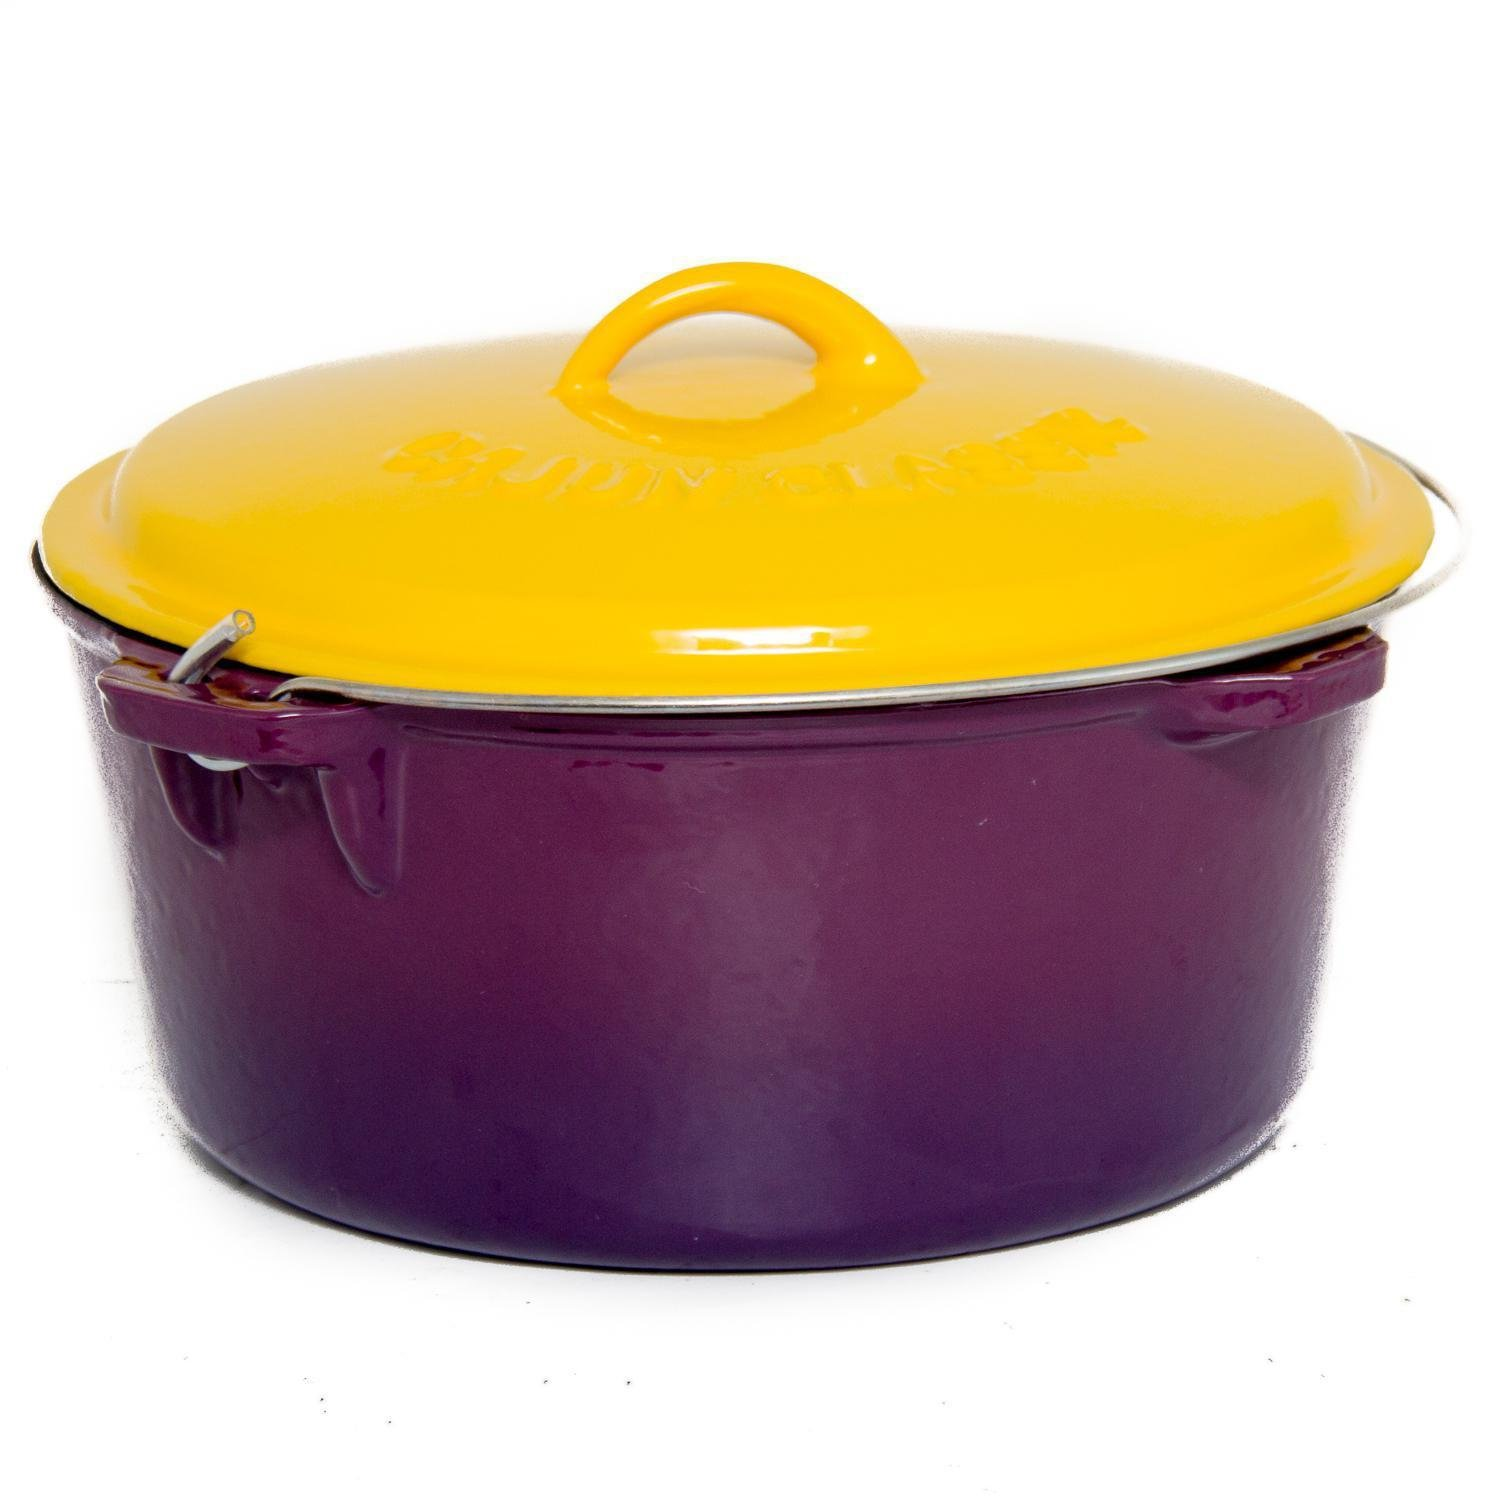 Cajun Classic 9-Quart Enamel Cast Iron Dutch Oven - Purple & Gold - GL10488PG